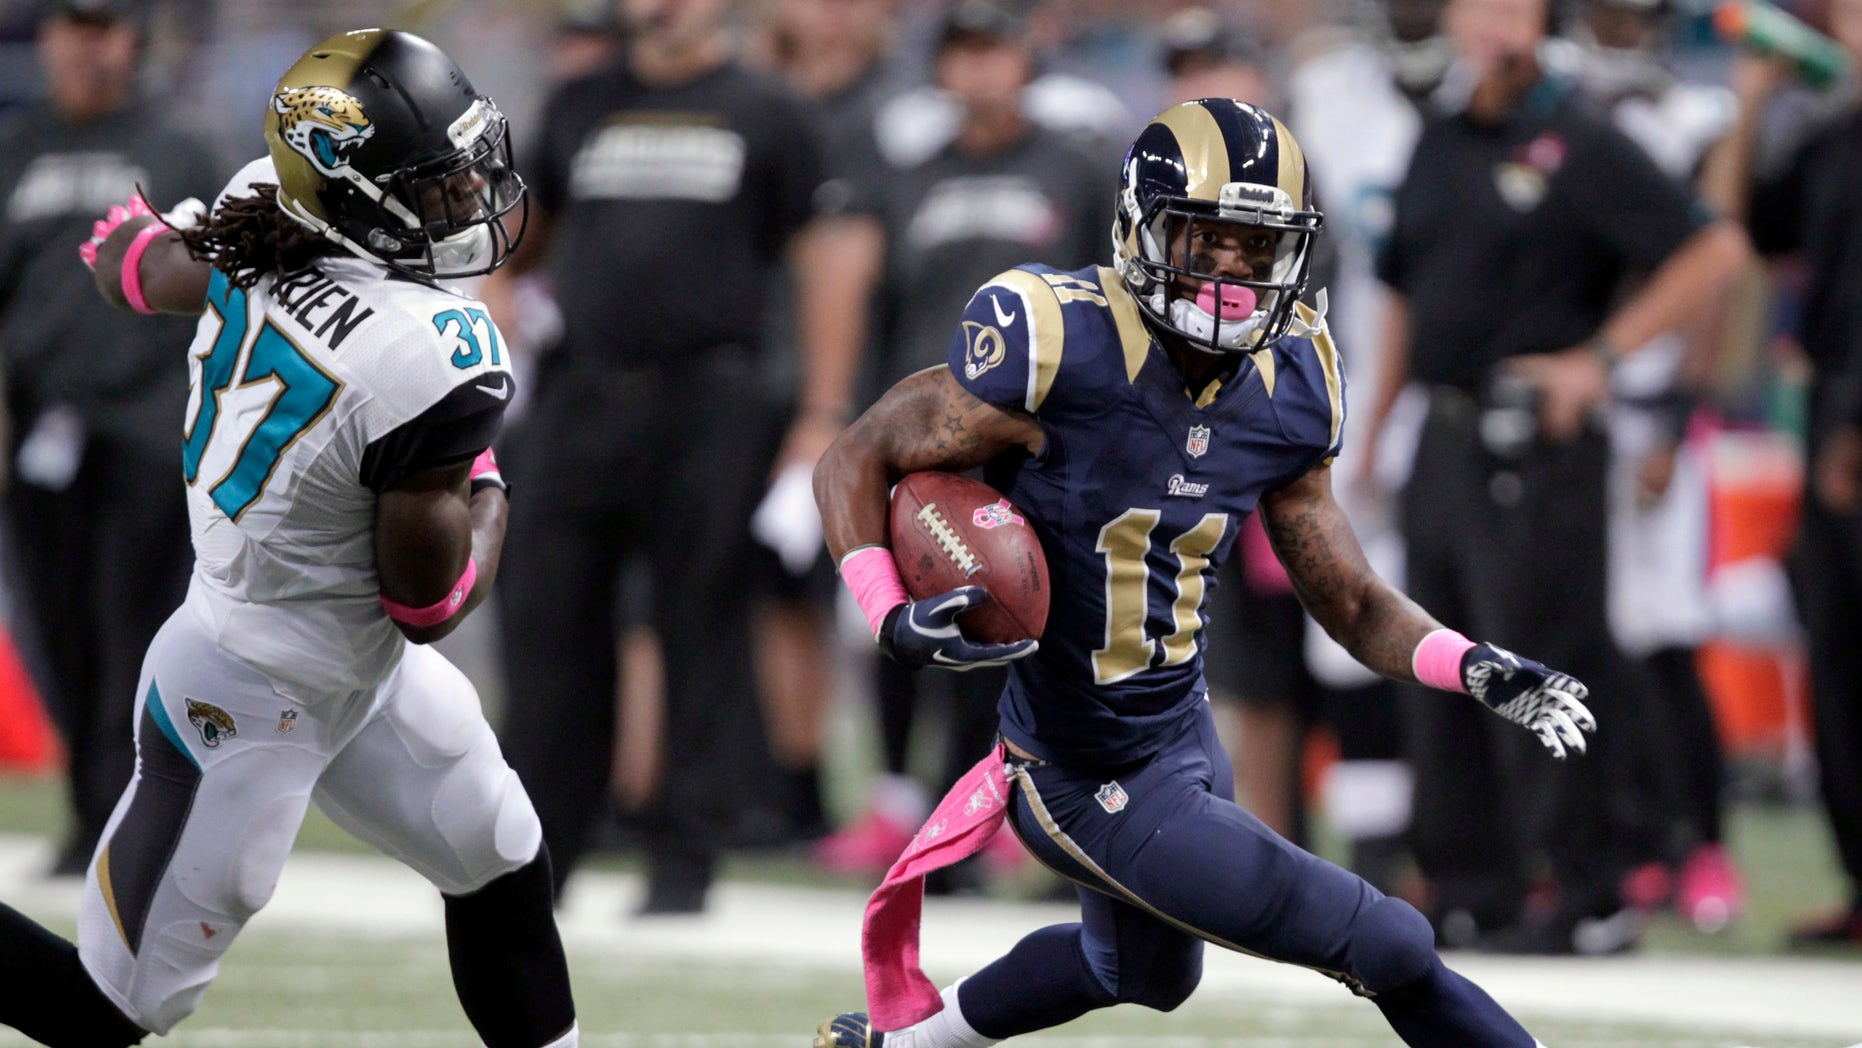 St. Louis Rams wide receiver Tavon Austin, right, runs with the ball past Jacksonville Jaguars safety John Cyprien, left, after catching a pass for a 25-yard gain during the second quarter of an NFL football game Sunday, Oct. 6, 2013, in St. Louis. (AP Photo/Tom Gannam)